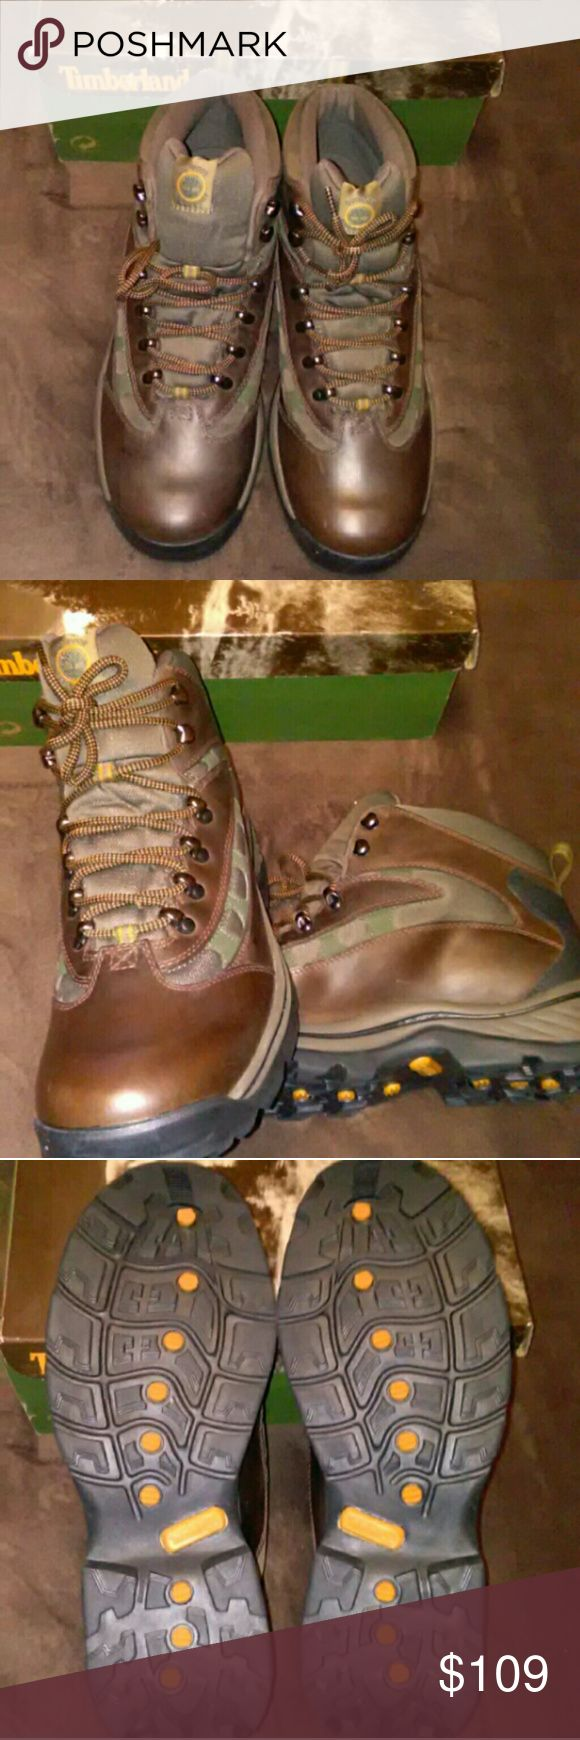 🆕❗ Men's Timberland Boots - Field/Hiking - 13 Men's Timberland Boots -    Hiking/Field Style (Reasonable Offers Considered) ✓Brand NEW! (Not Worn) ✓Color: Brown + Green ✓Size: 13 ✓Leather & Mesh Upper ✓Outdoor Performance ✓In Original Box  ** Should ship within 12-24 hours of purchase!! Timberland Shoes Boots